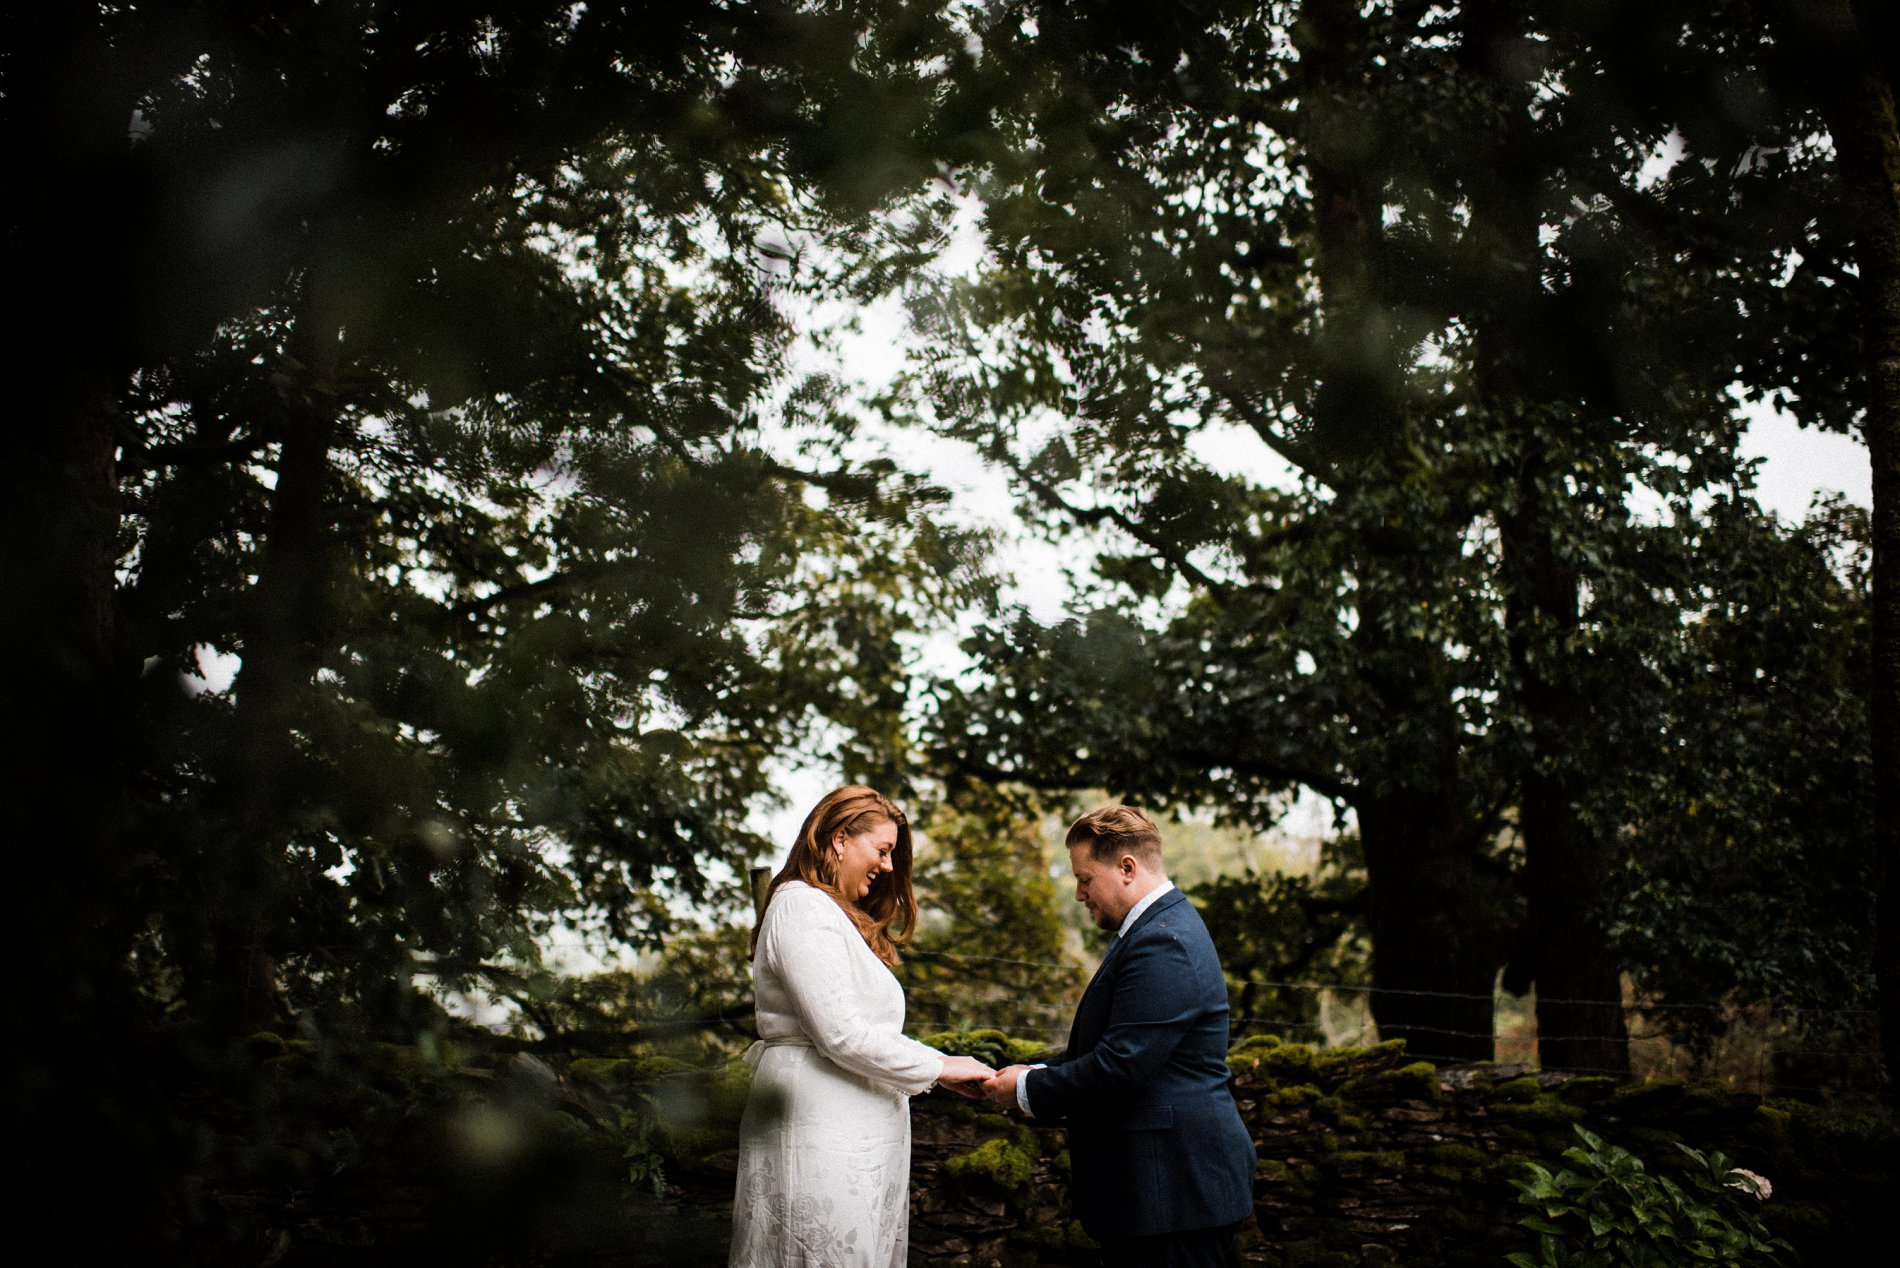 An Elopement Wedding at The Gilpin (c) Dominic Lemoine Photography (68)